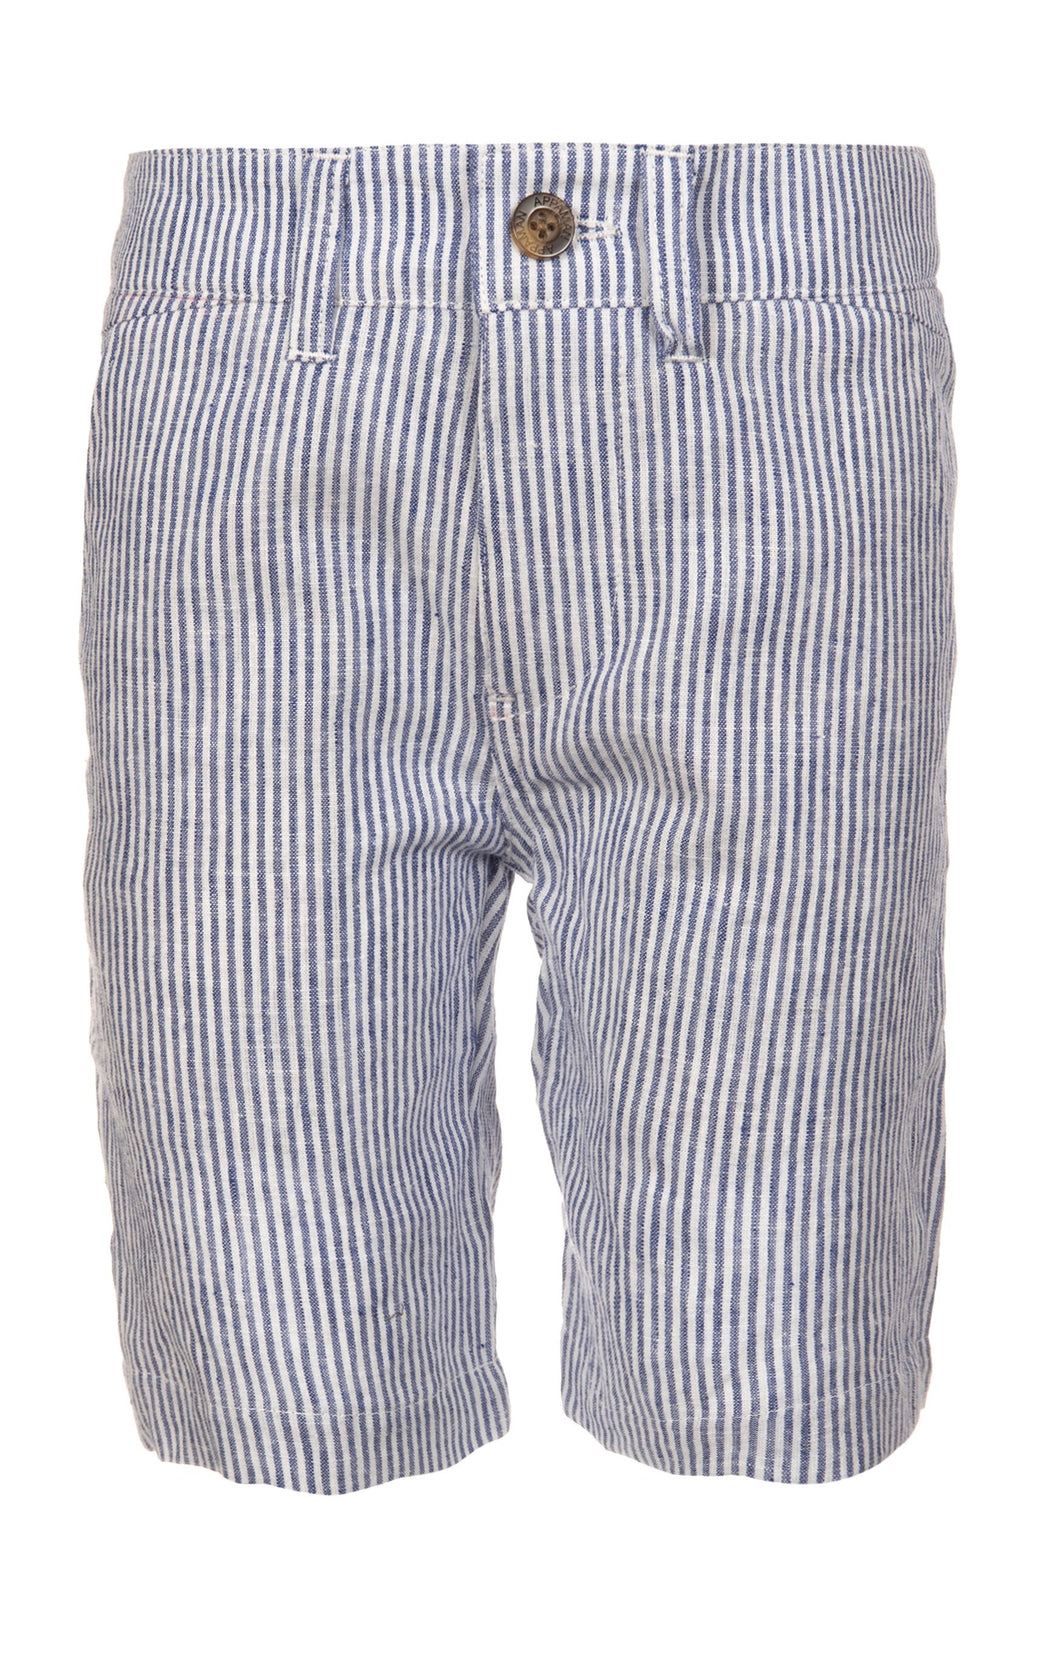 Appaman Trouser Shorts